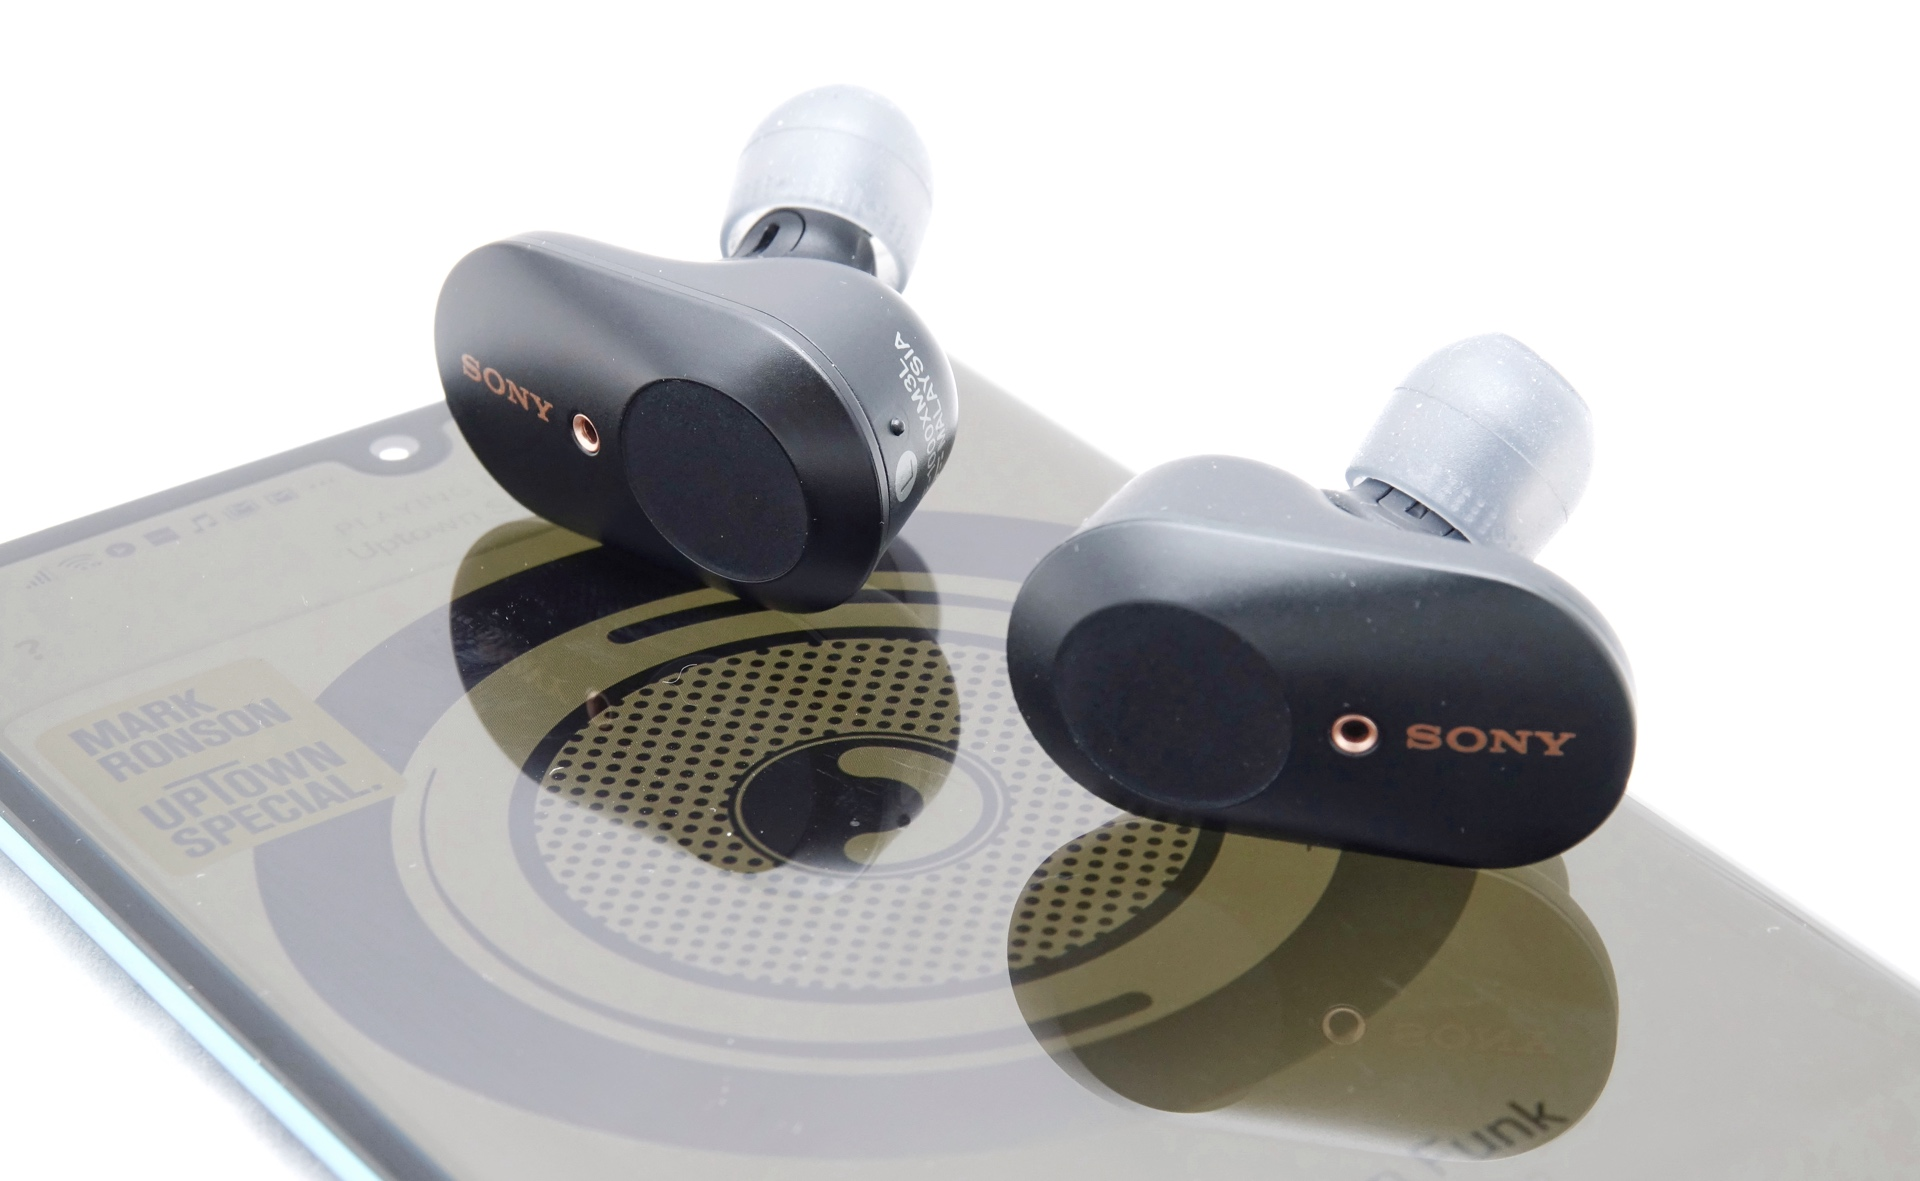 Sony WF-1000XM3 review